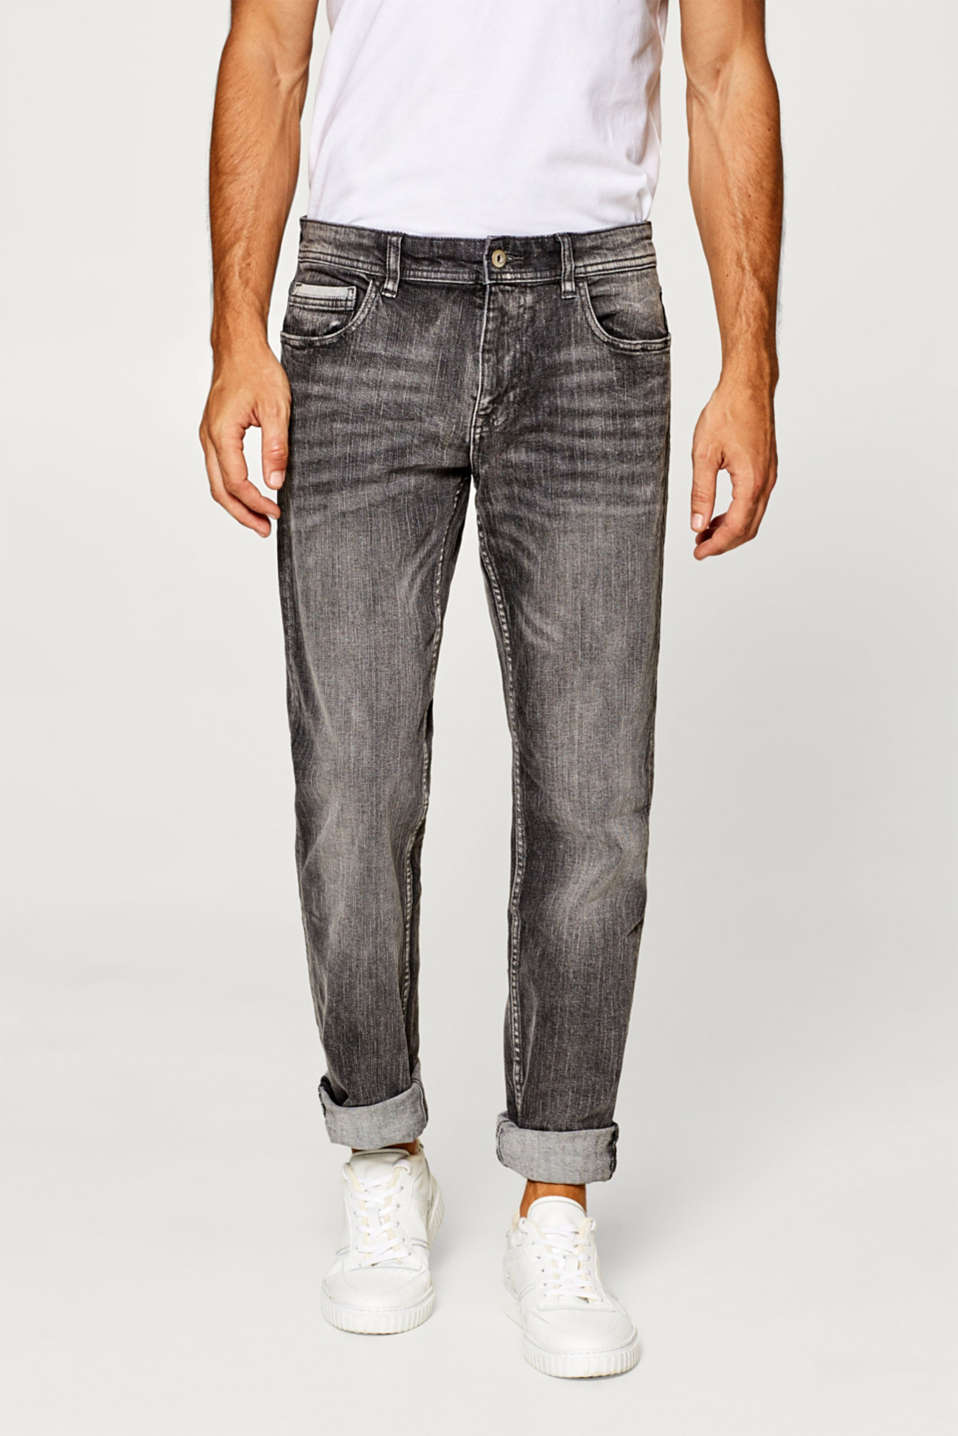 edc - Stretch jeans with a variety of garment-washed effects